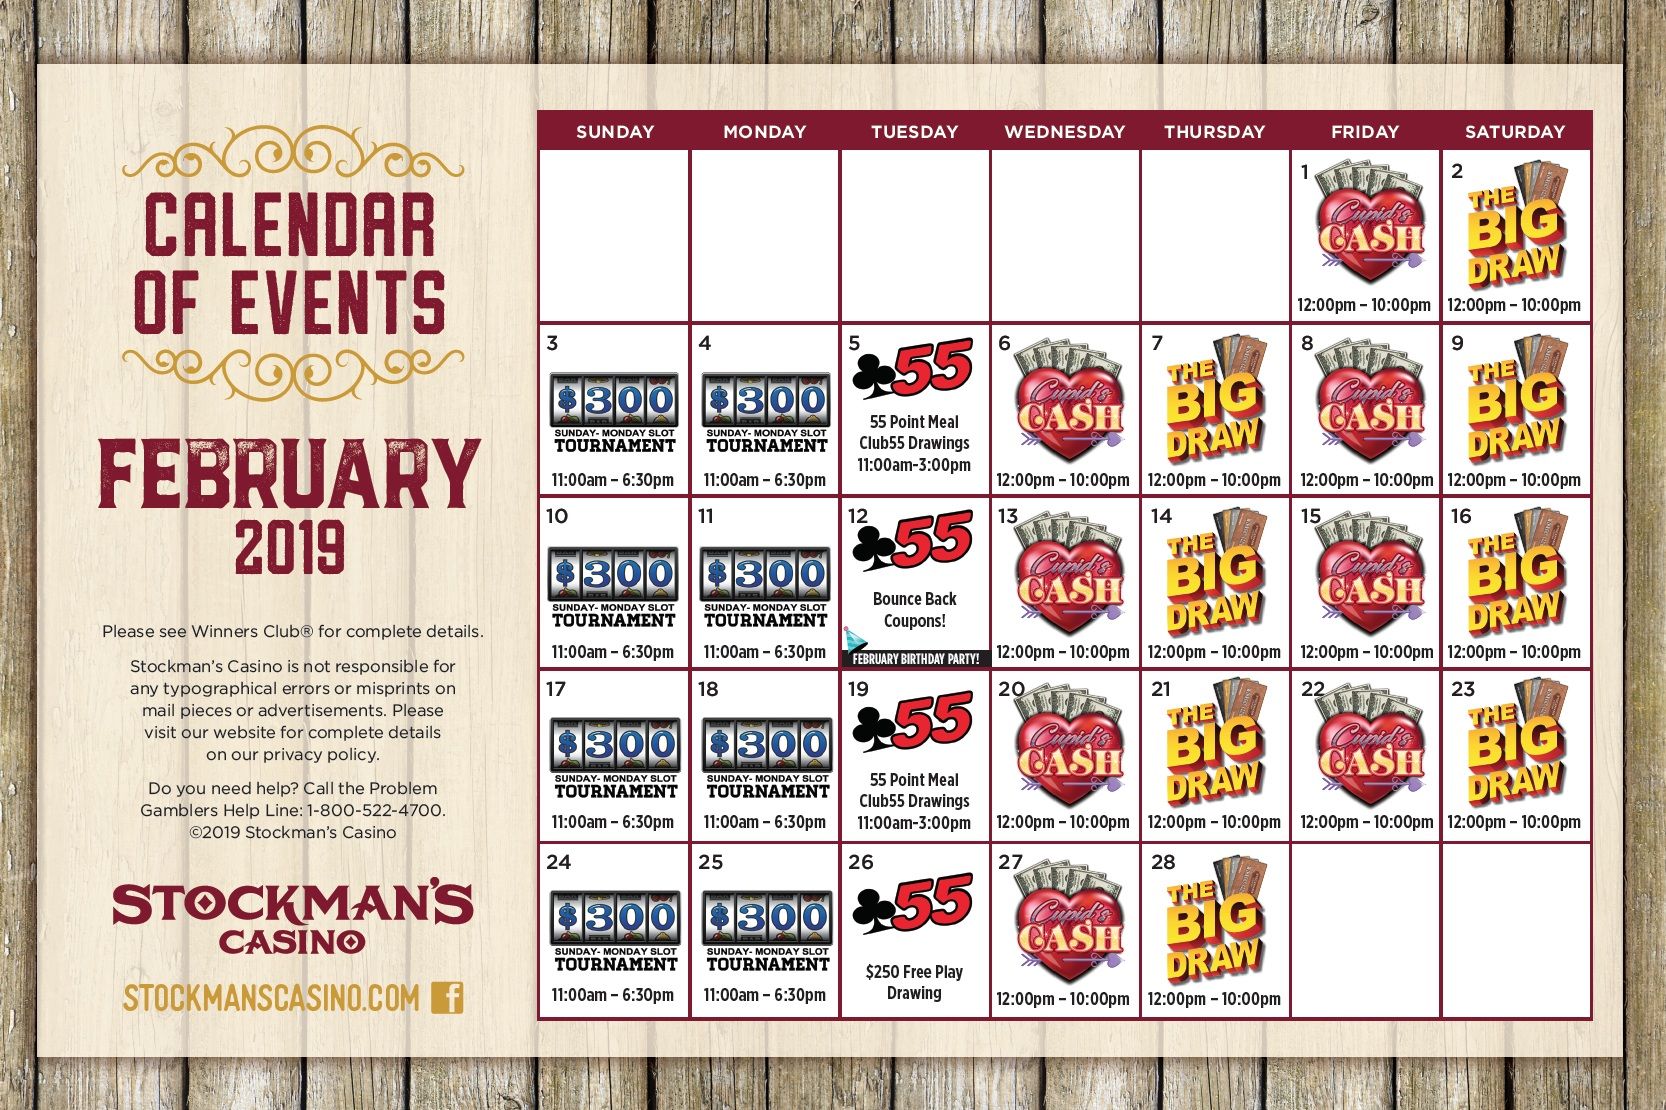 Promotions - Visitors to Stockman's Casino have the opportunity to participate in a variety of rewarding promotions throughout the year. From exciting contests and tournaments to other special offers, there's always something worth returning for!